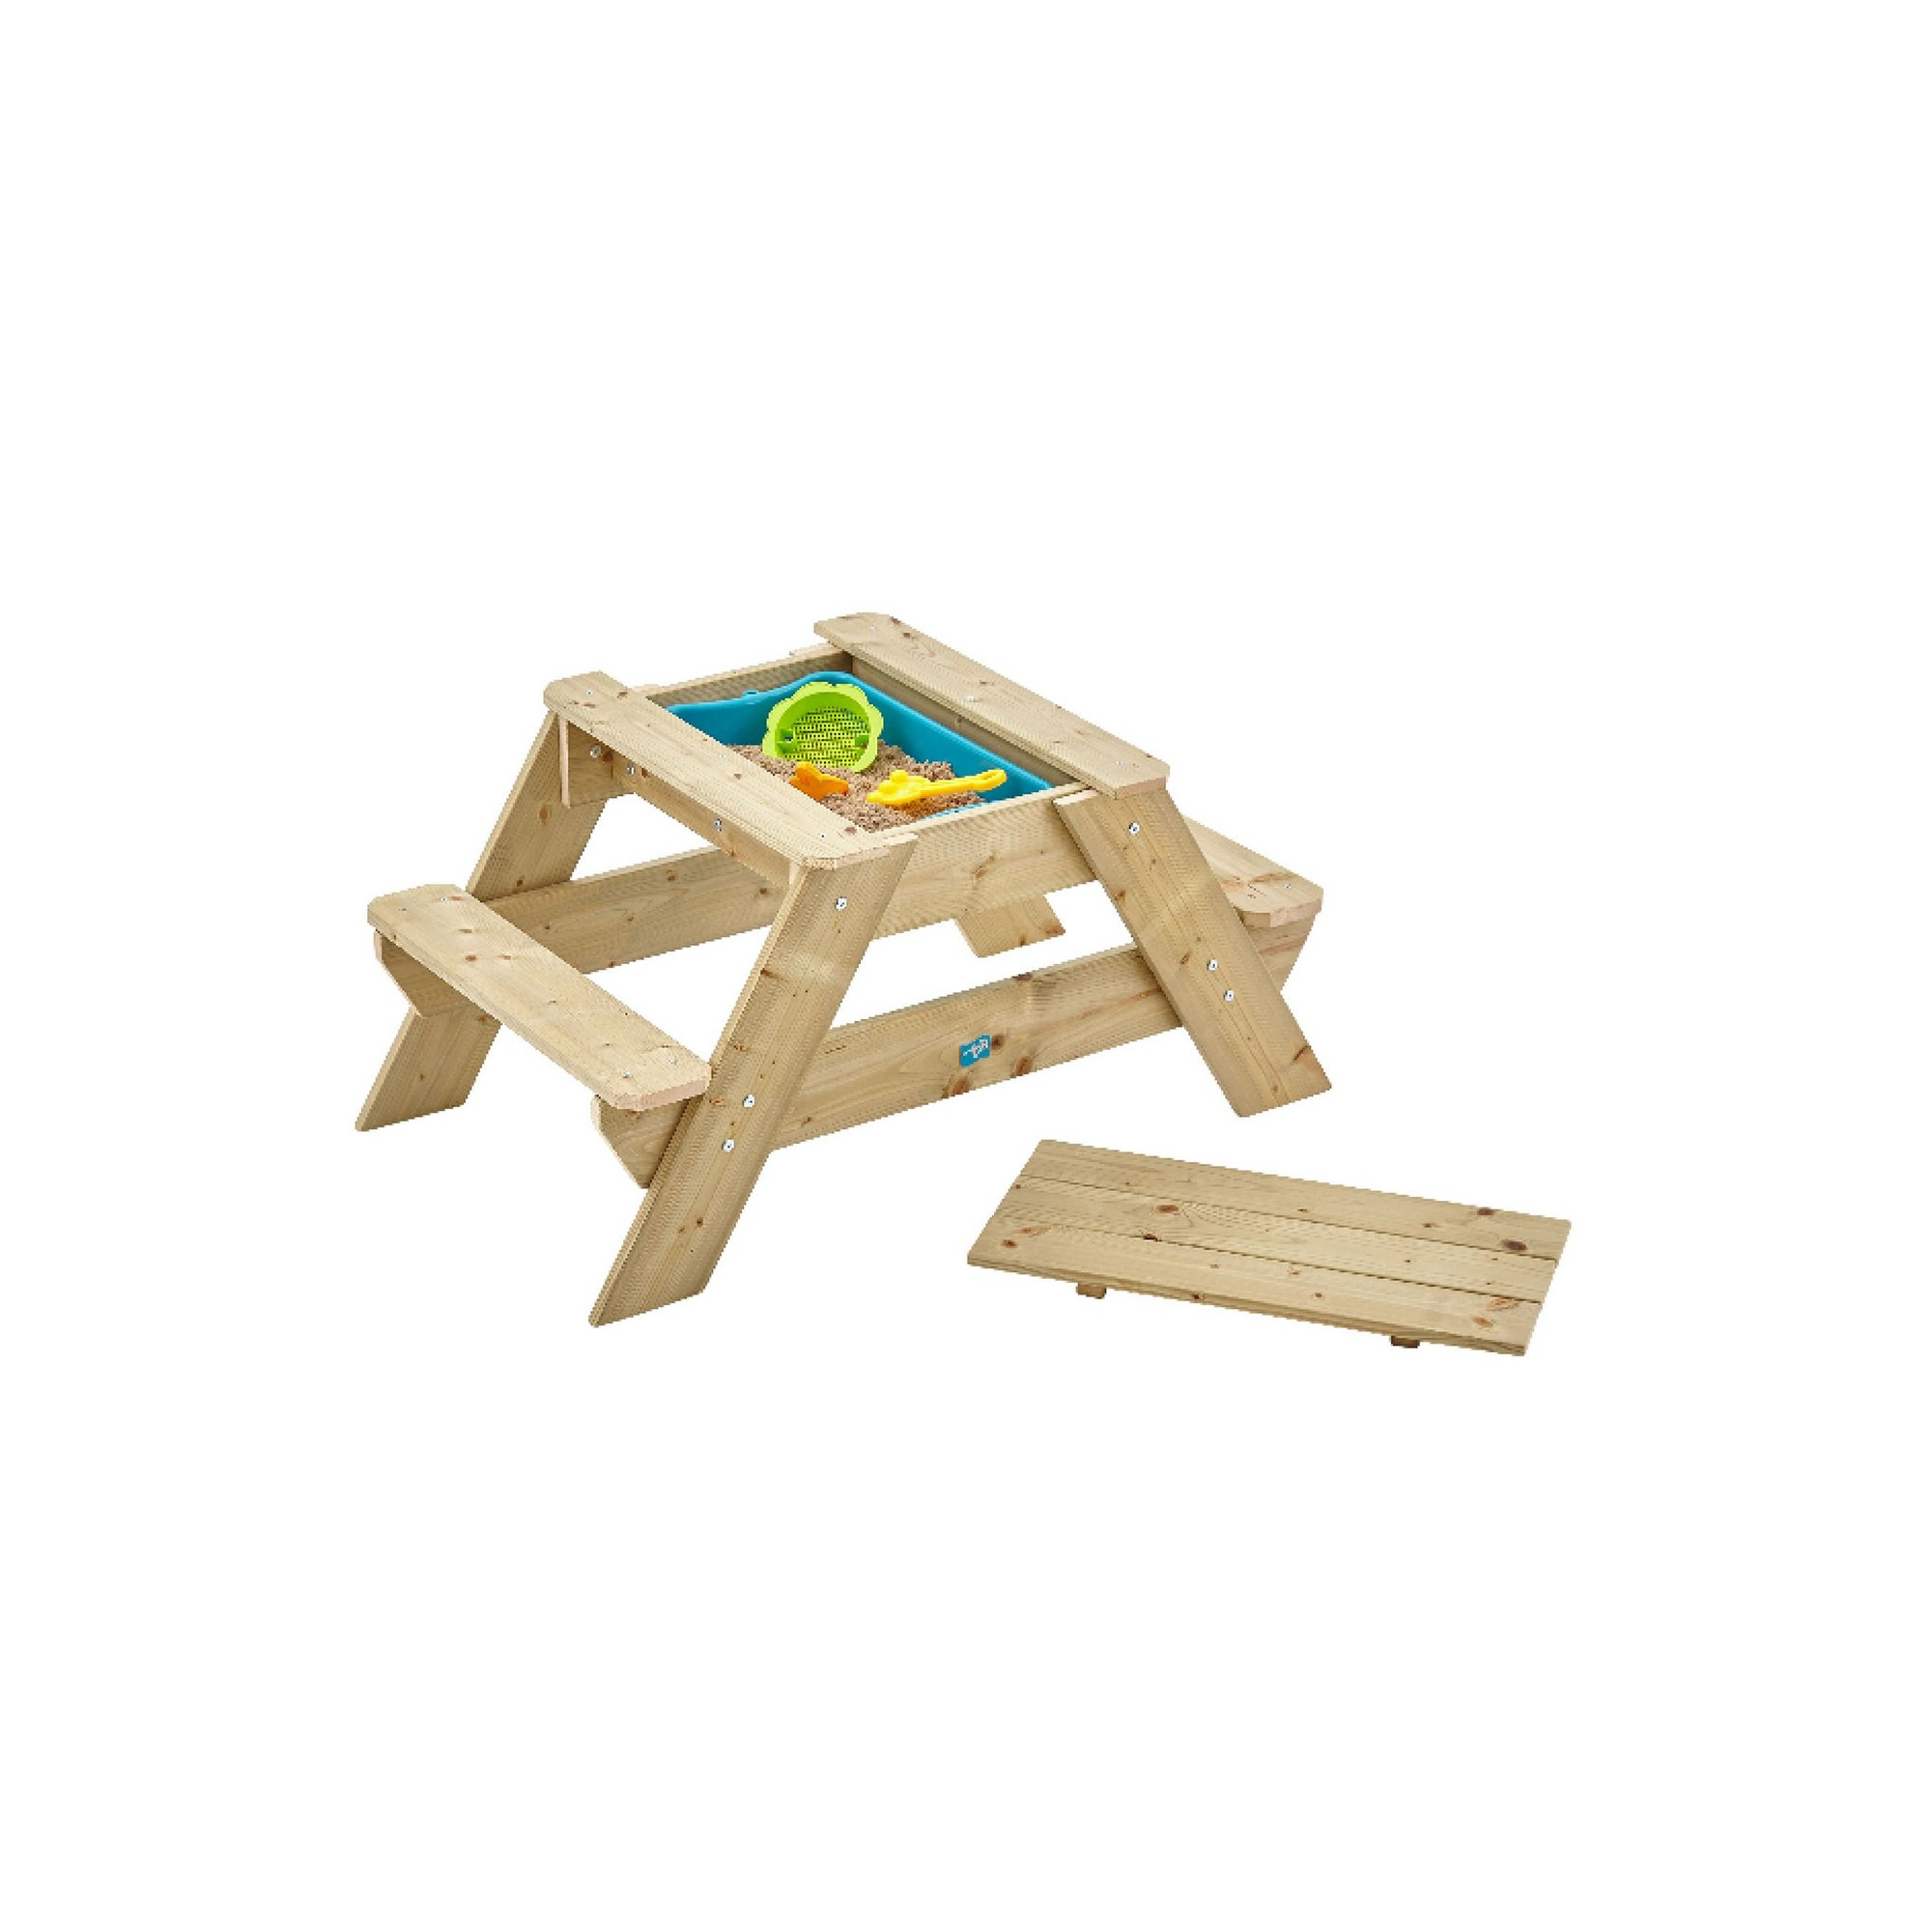 Image of TP Toys Early Fun Picnic Table Sandpit